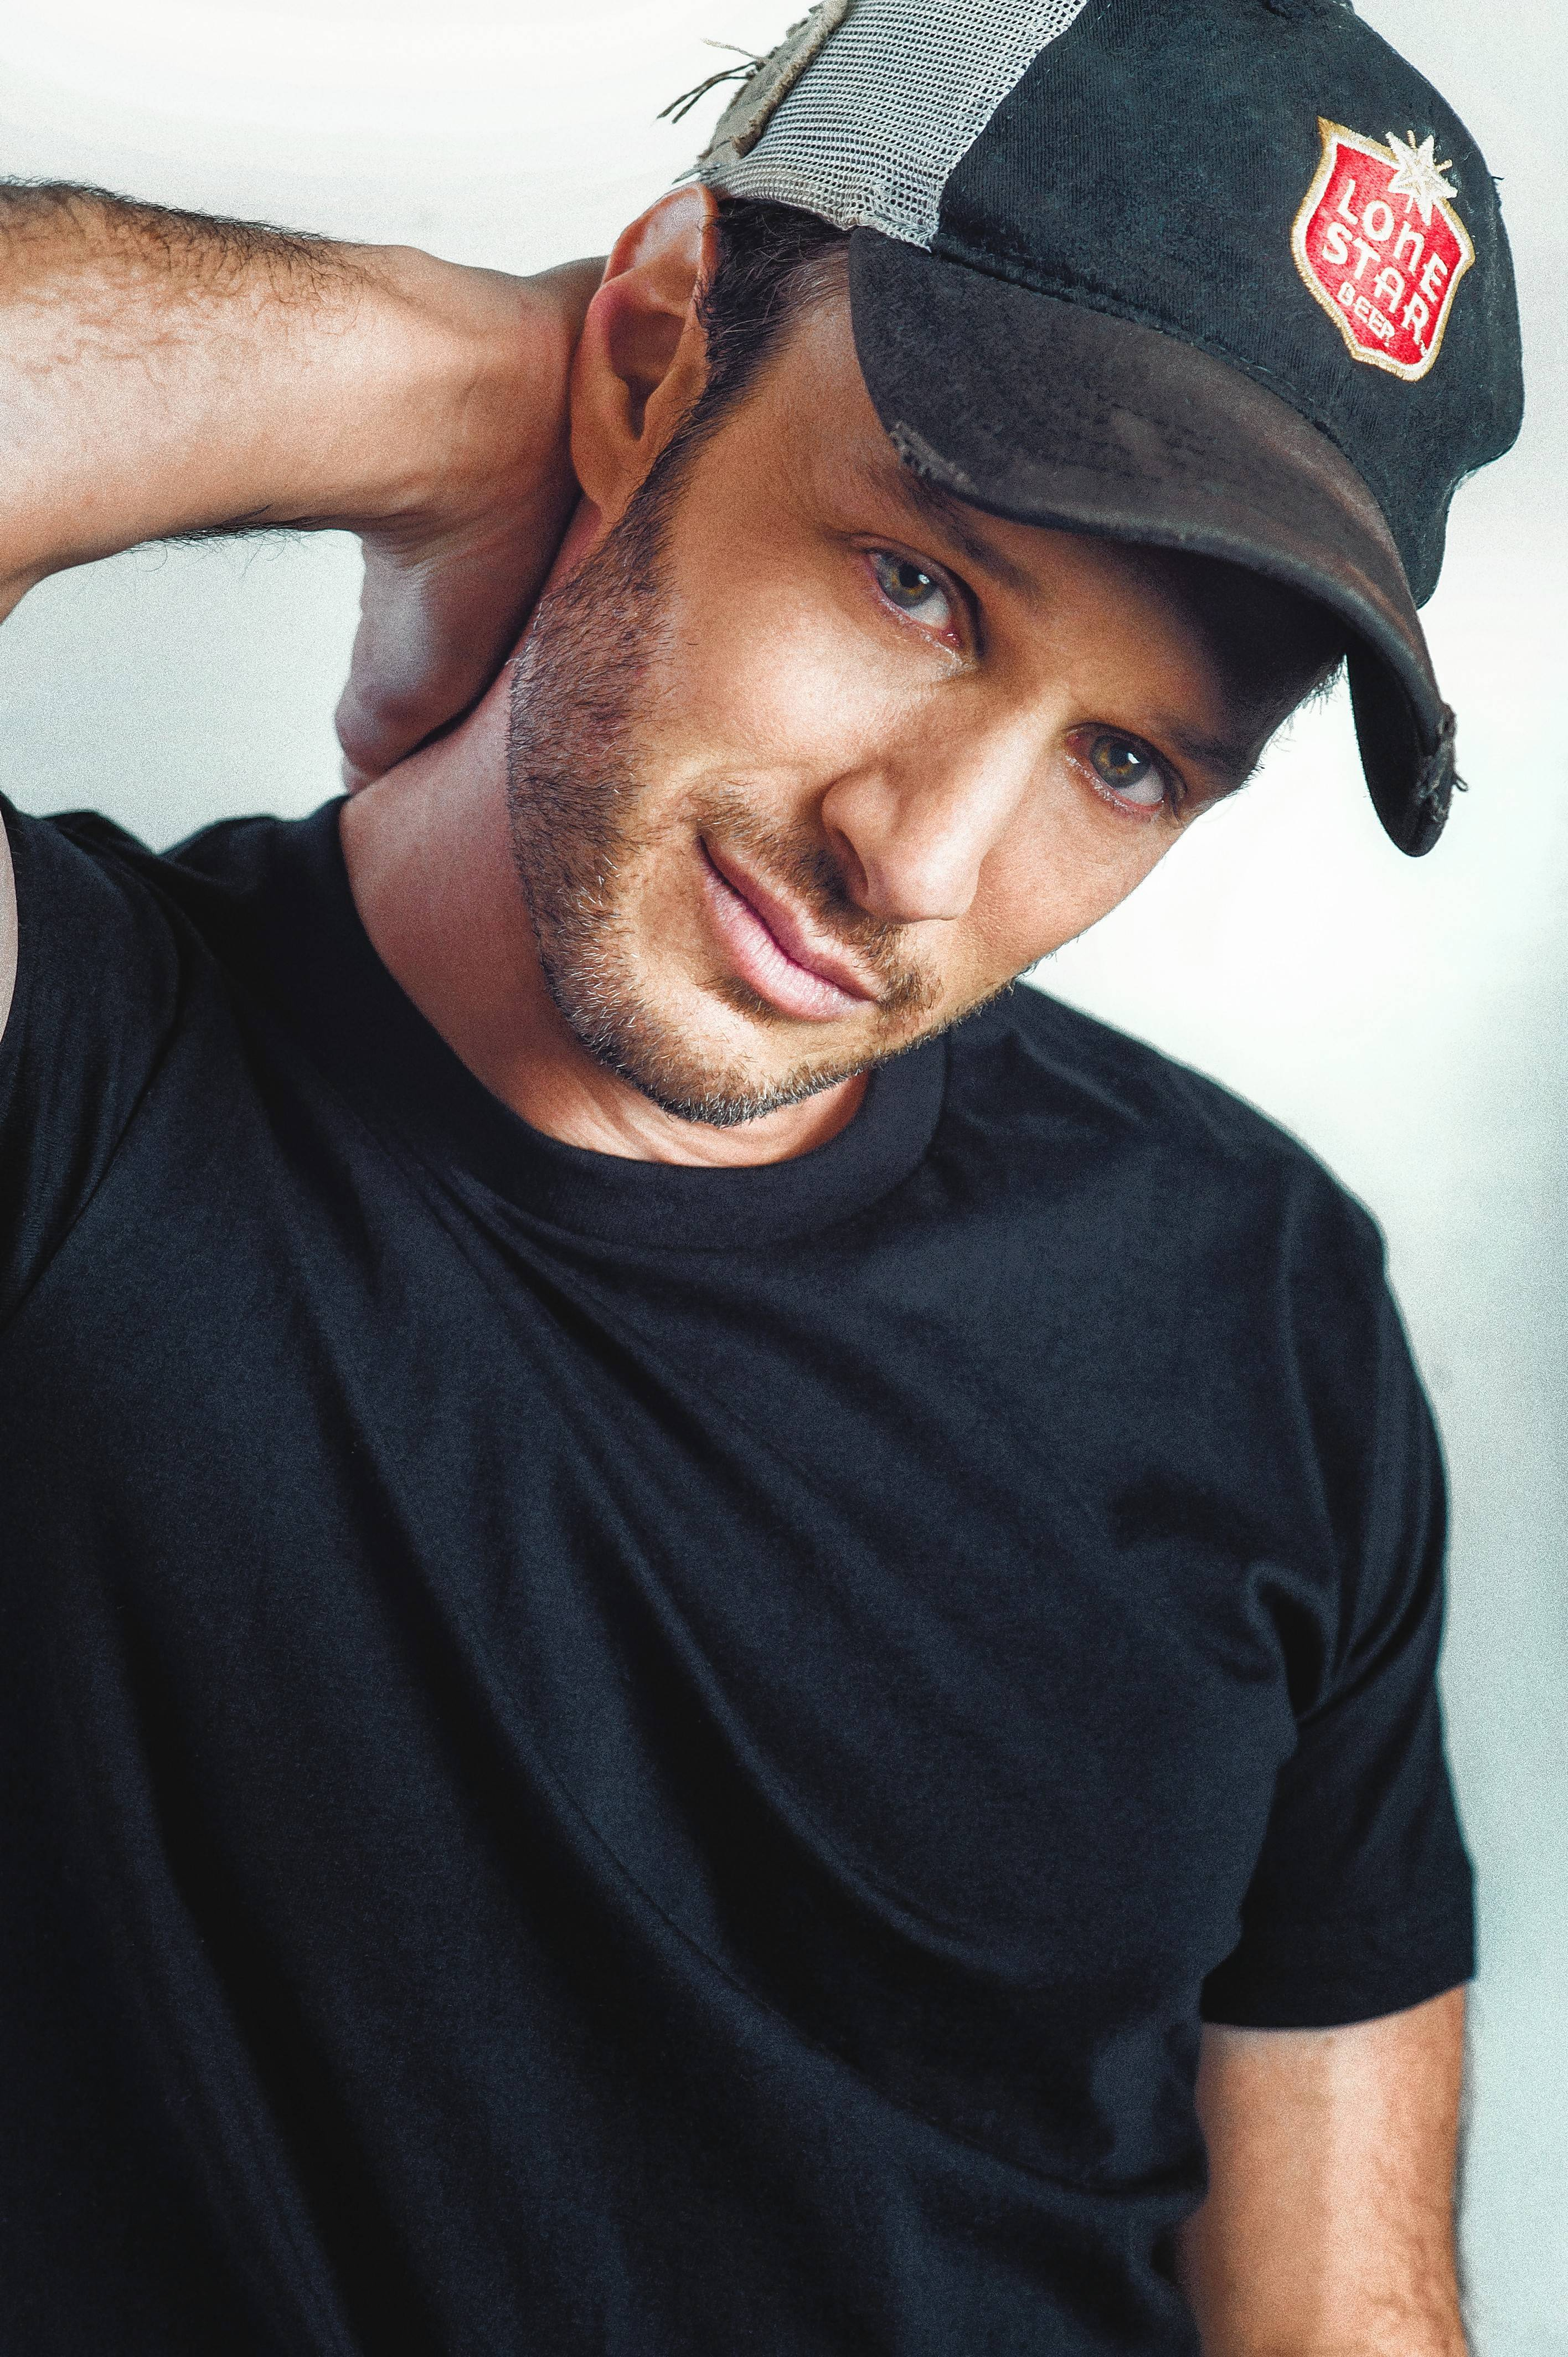 Comedian Josh Wolf performs at Zanies locations in Chicago and Rosemont.